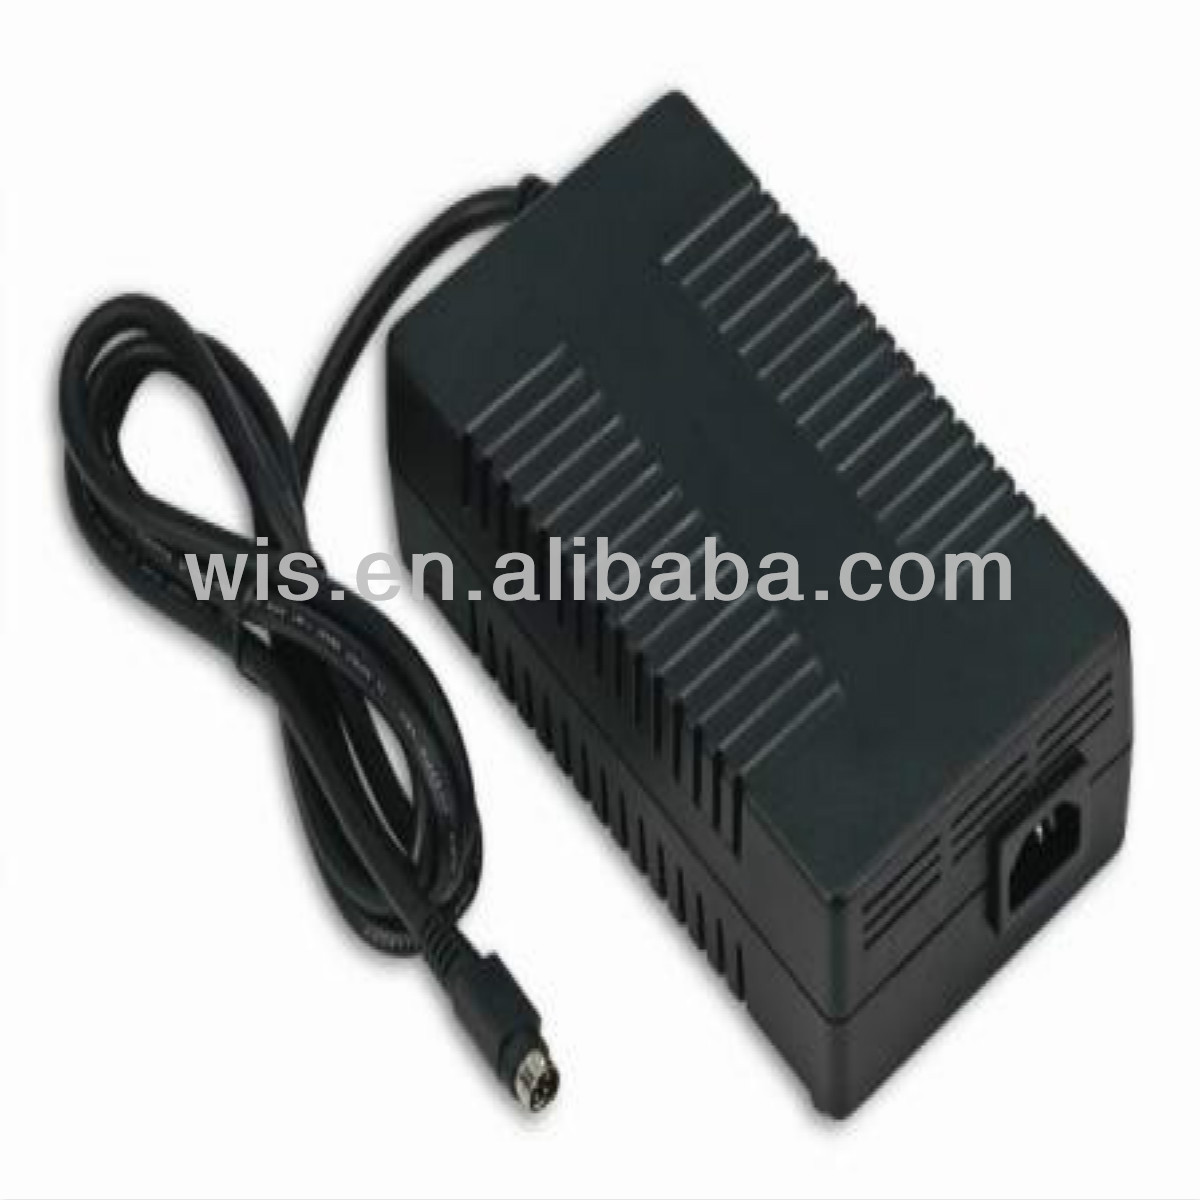 laptop ac adapter 12v 15a